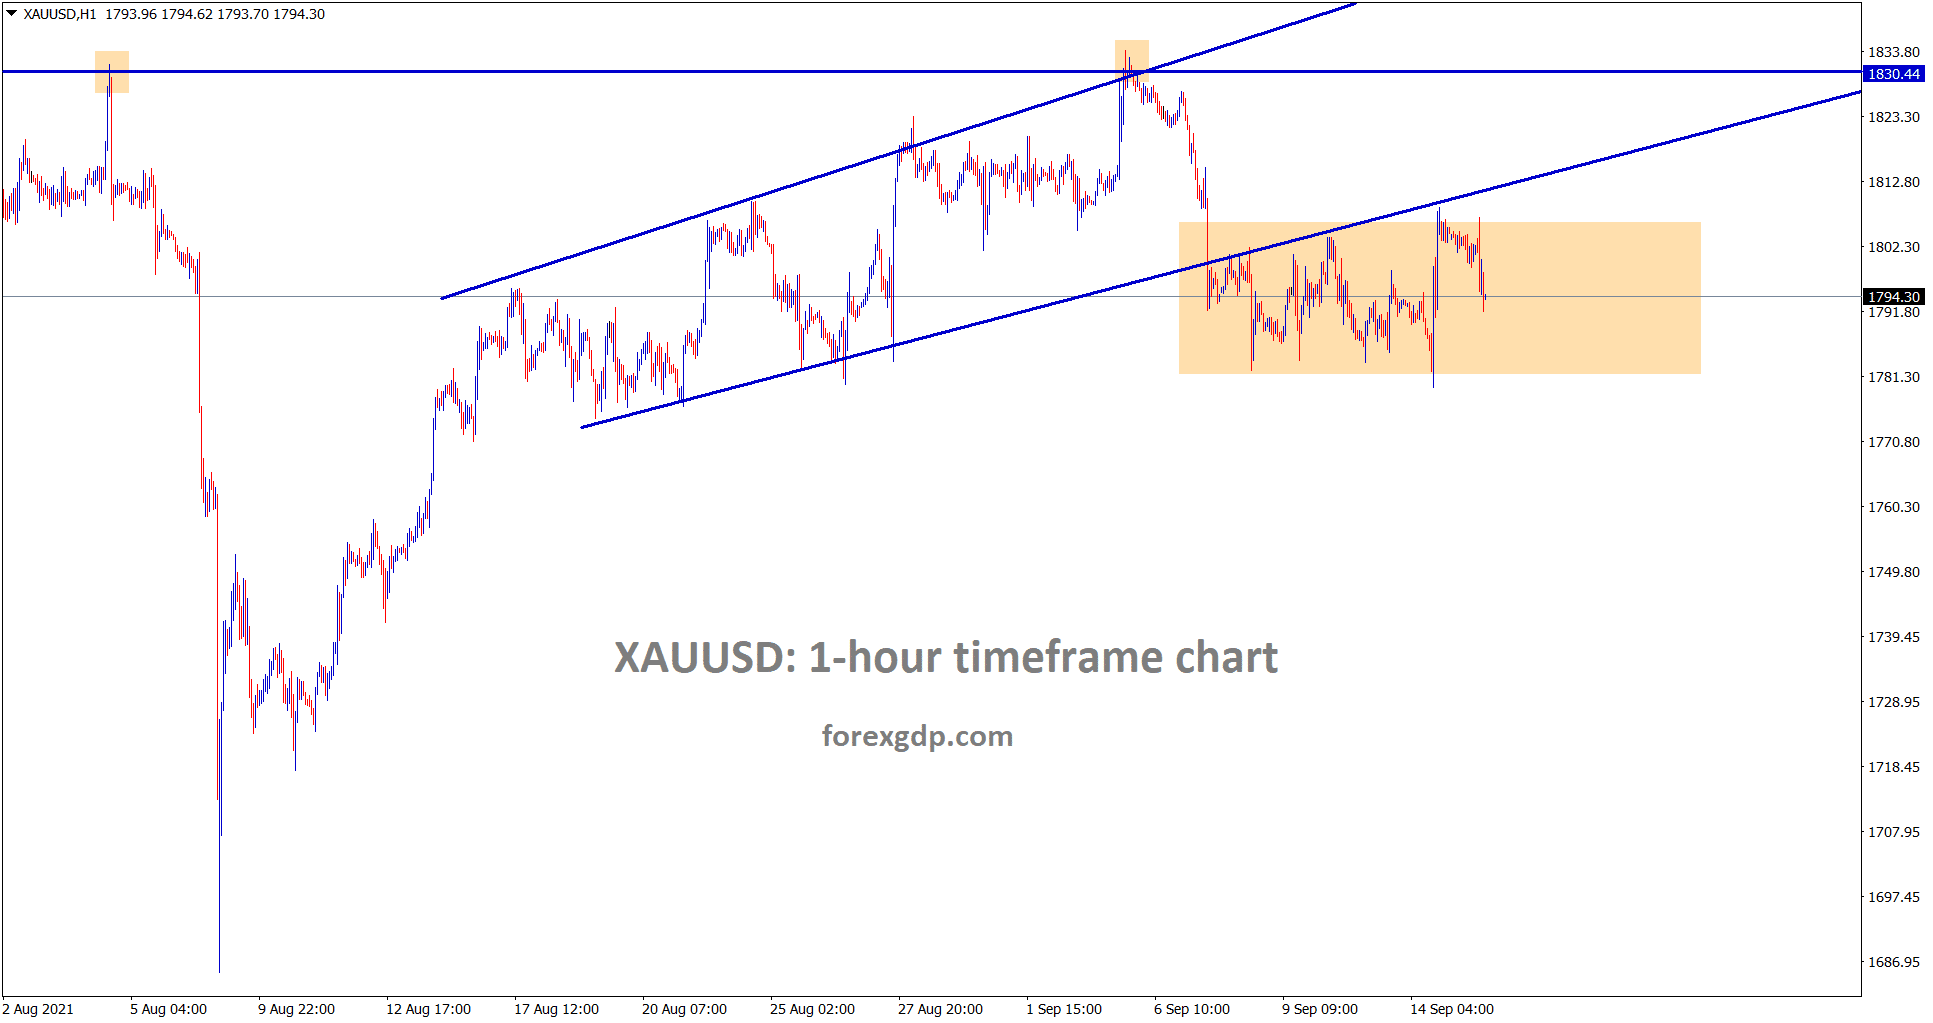 Gold price is still consolidating between the support resistance area